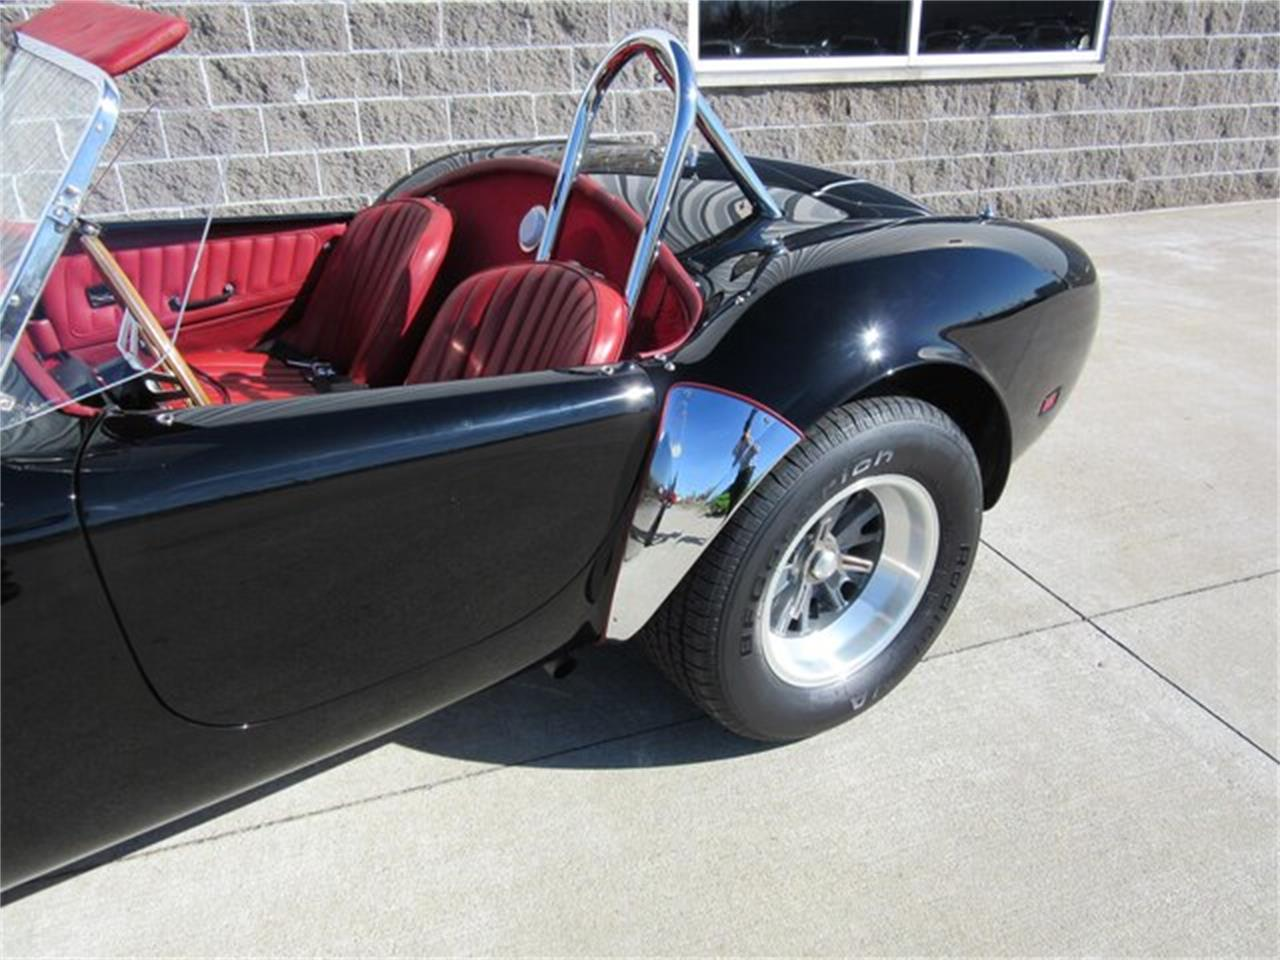 1985 Autokraft Cobra for sale in Greenwood, IN – photo 12